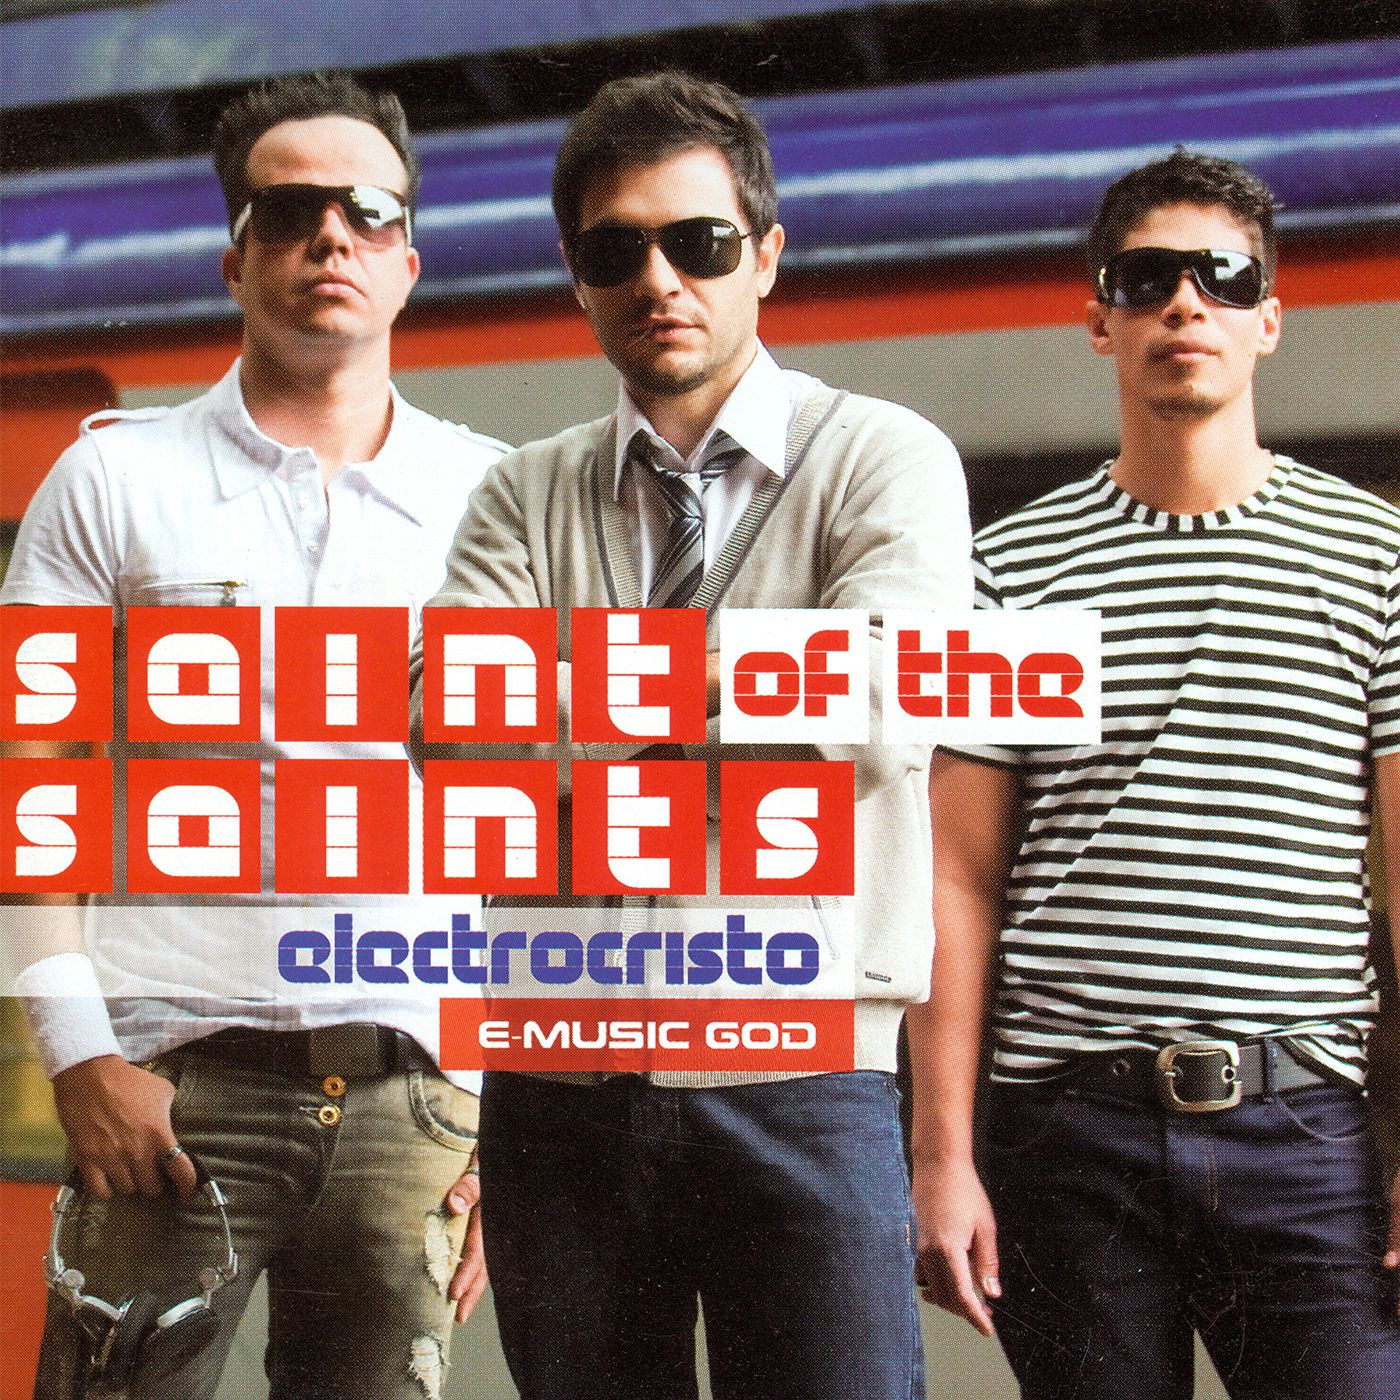 Saint of the saints - Electrocristo e-music God